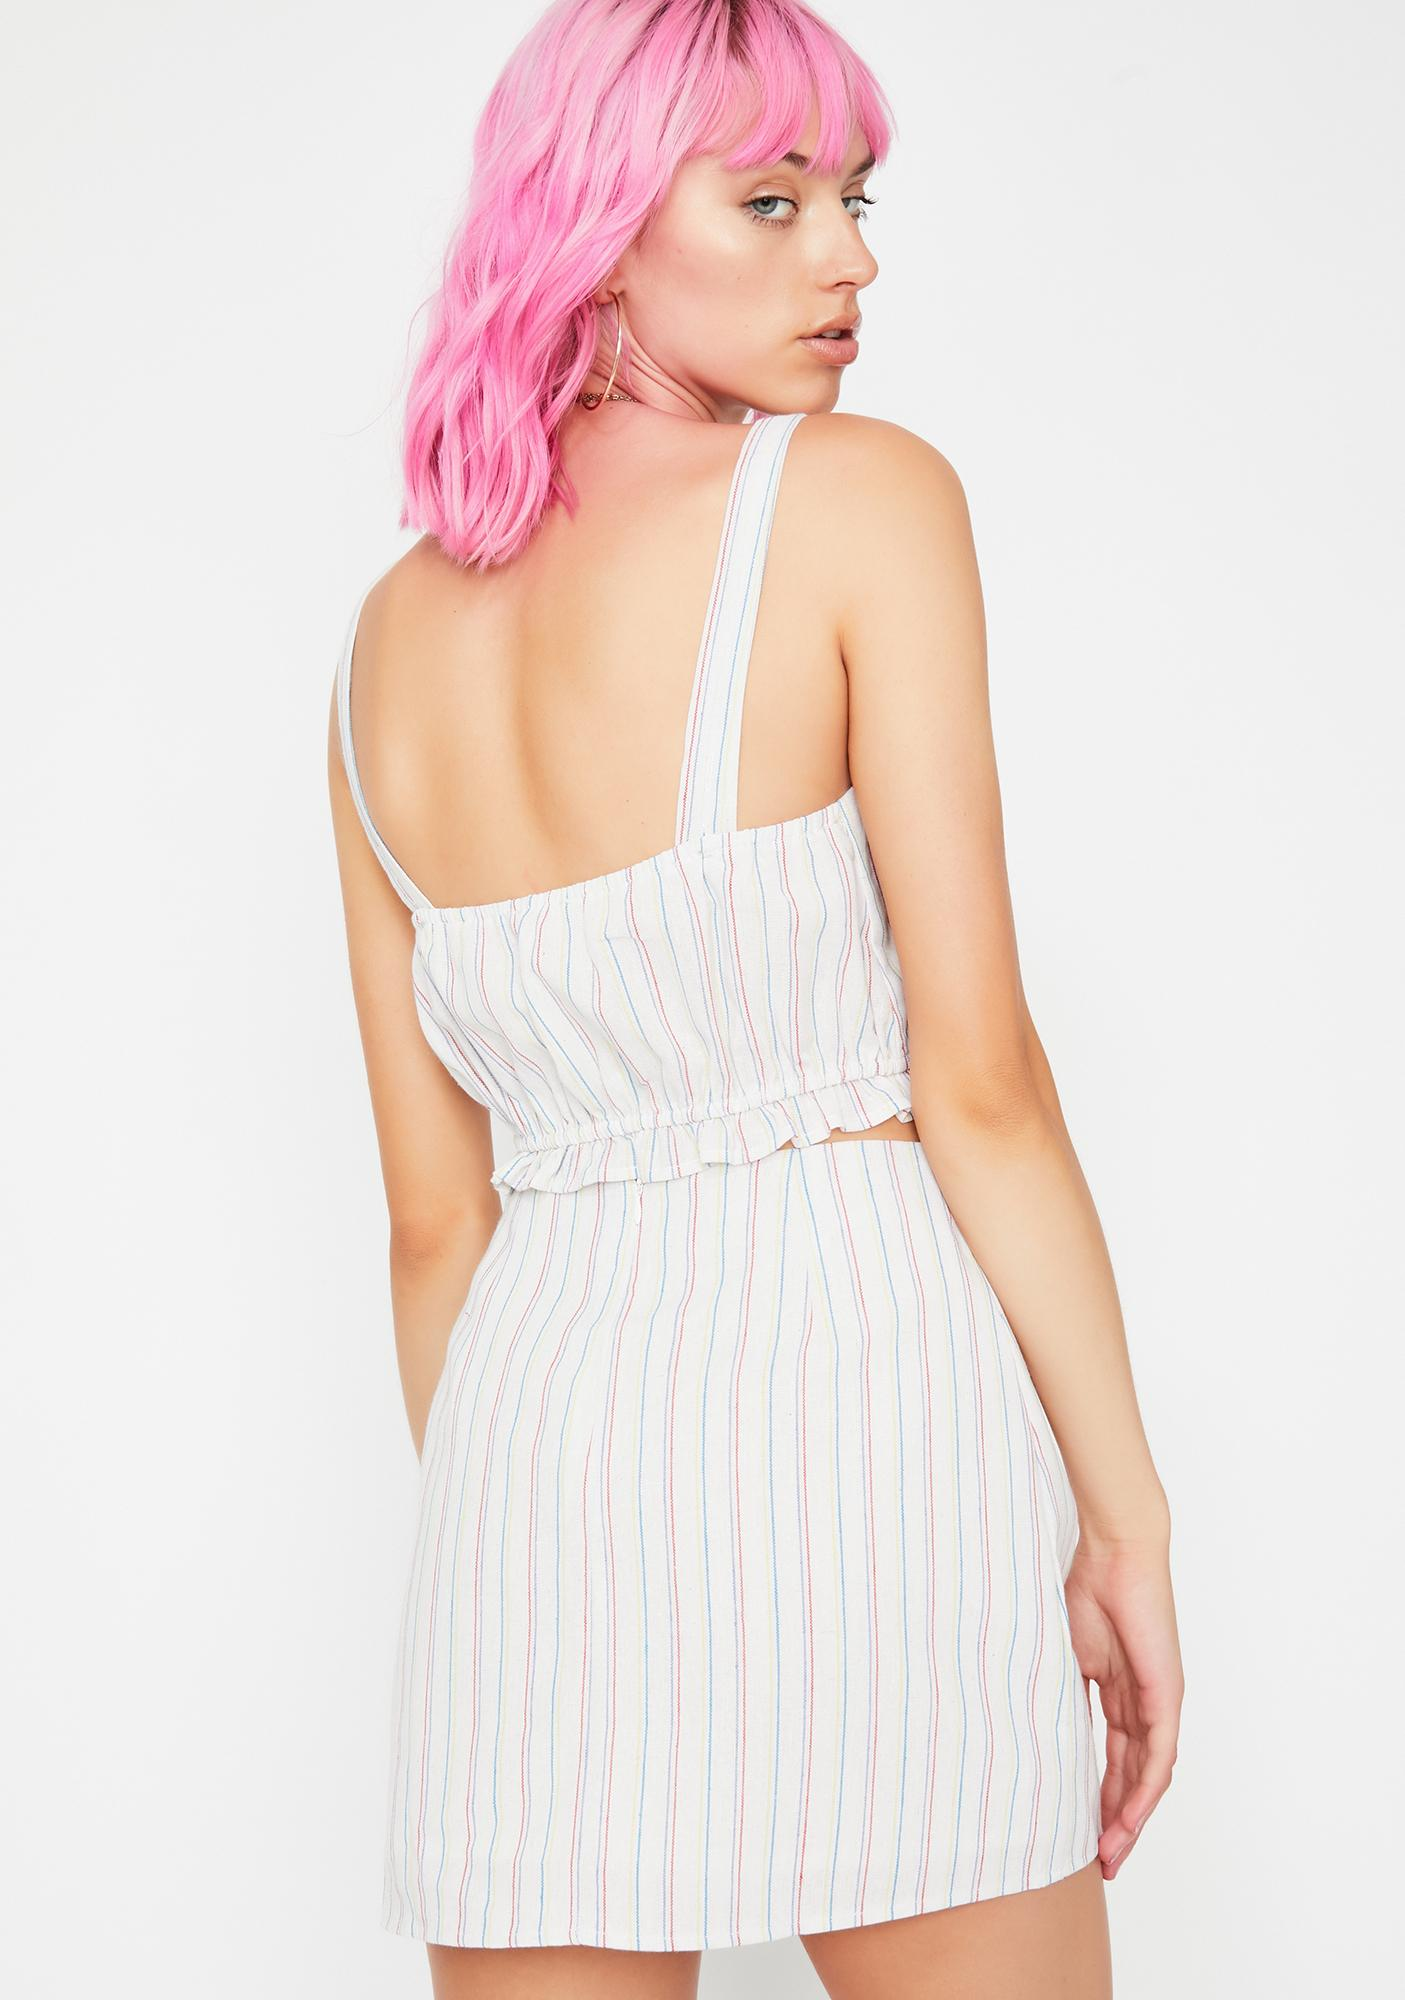 Hayes Valley Striped Skirt